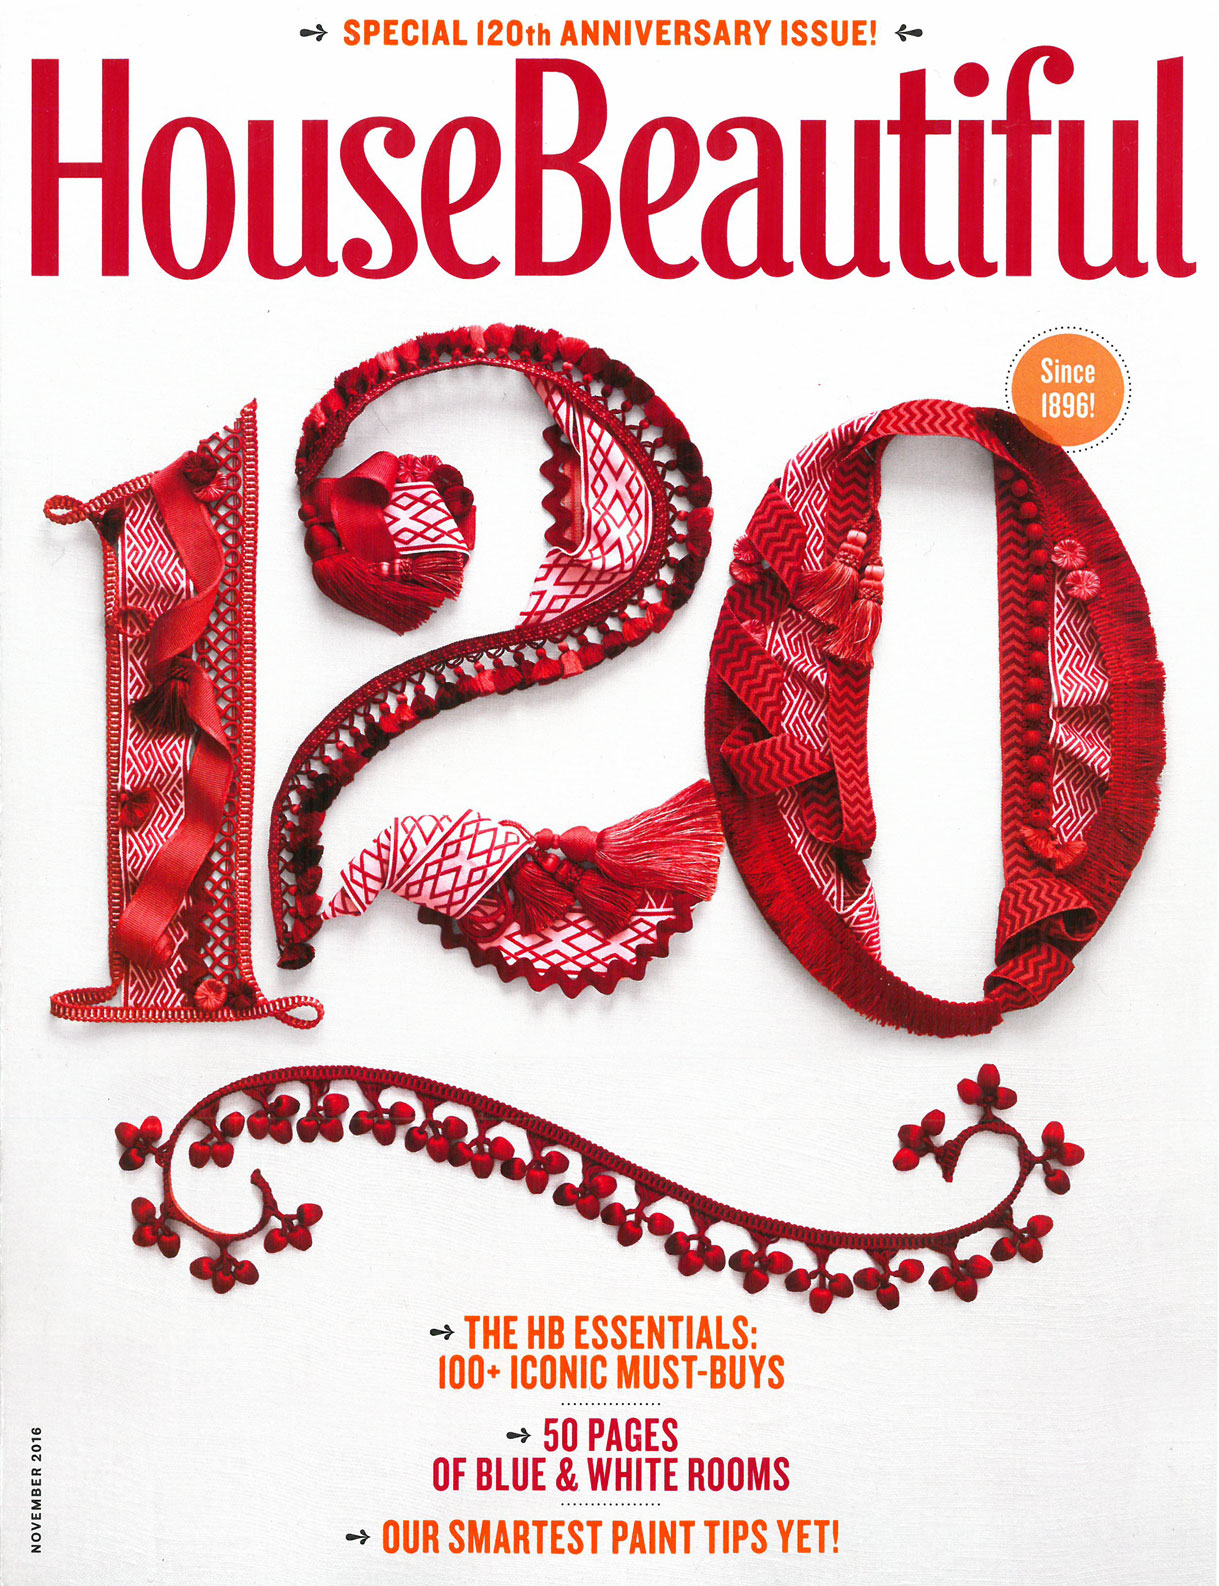 House Beautiful, November 2016, 1 of 5